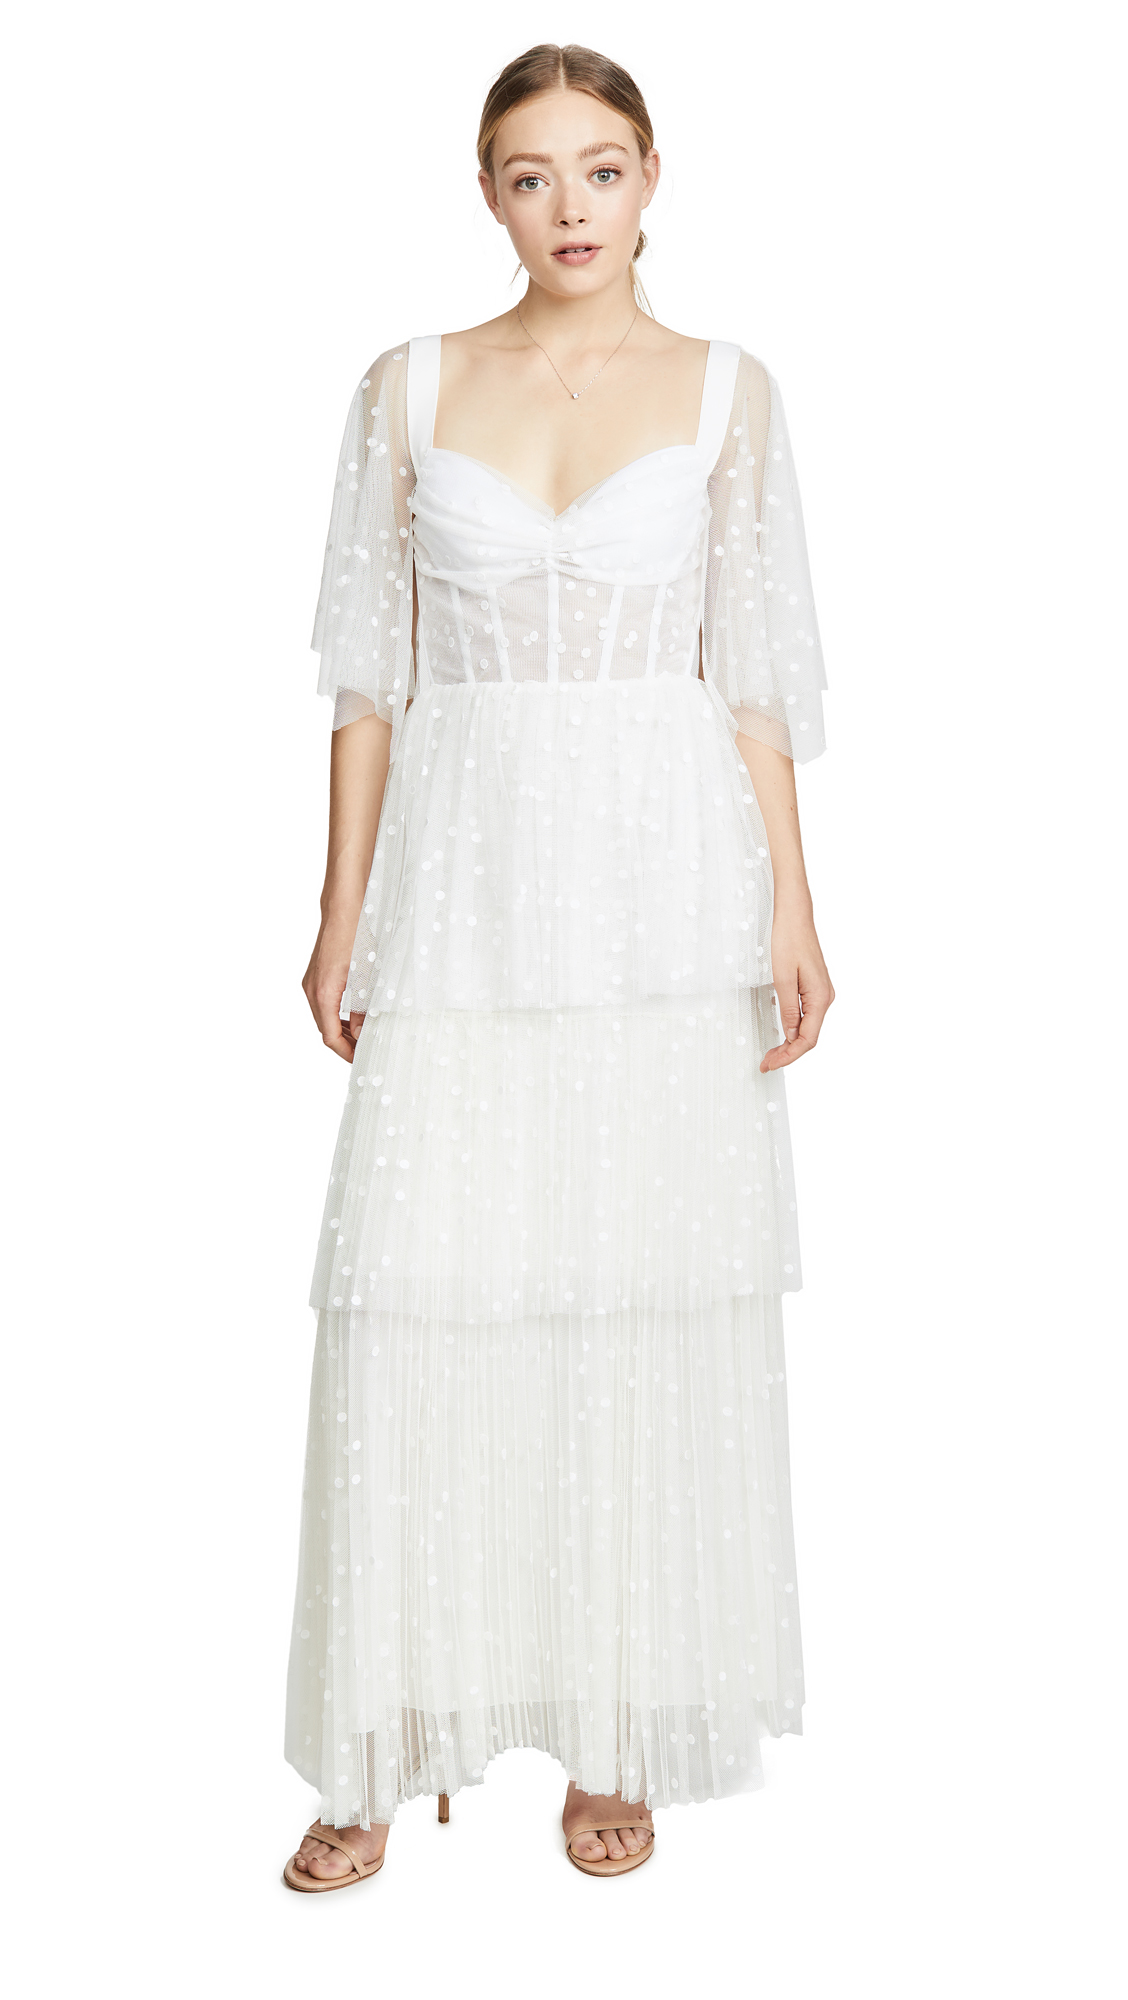 Maria Lucia Hohan Keona Dress - 30% Off Sale